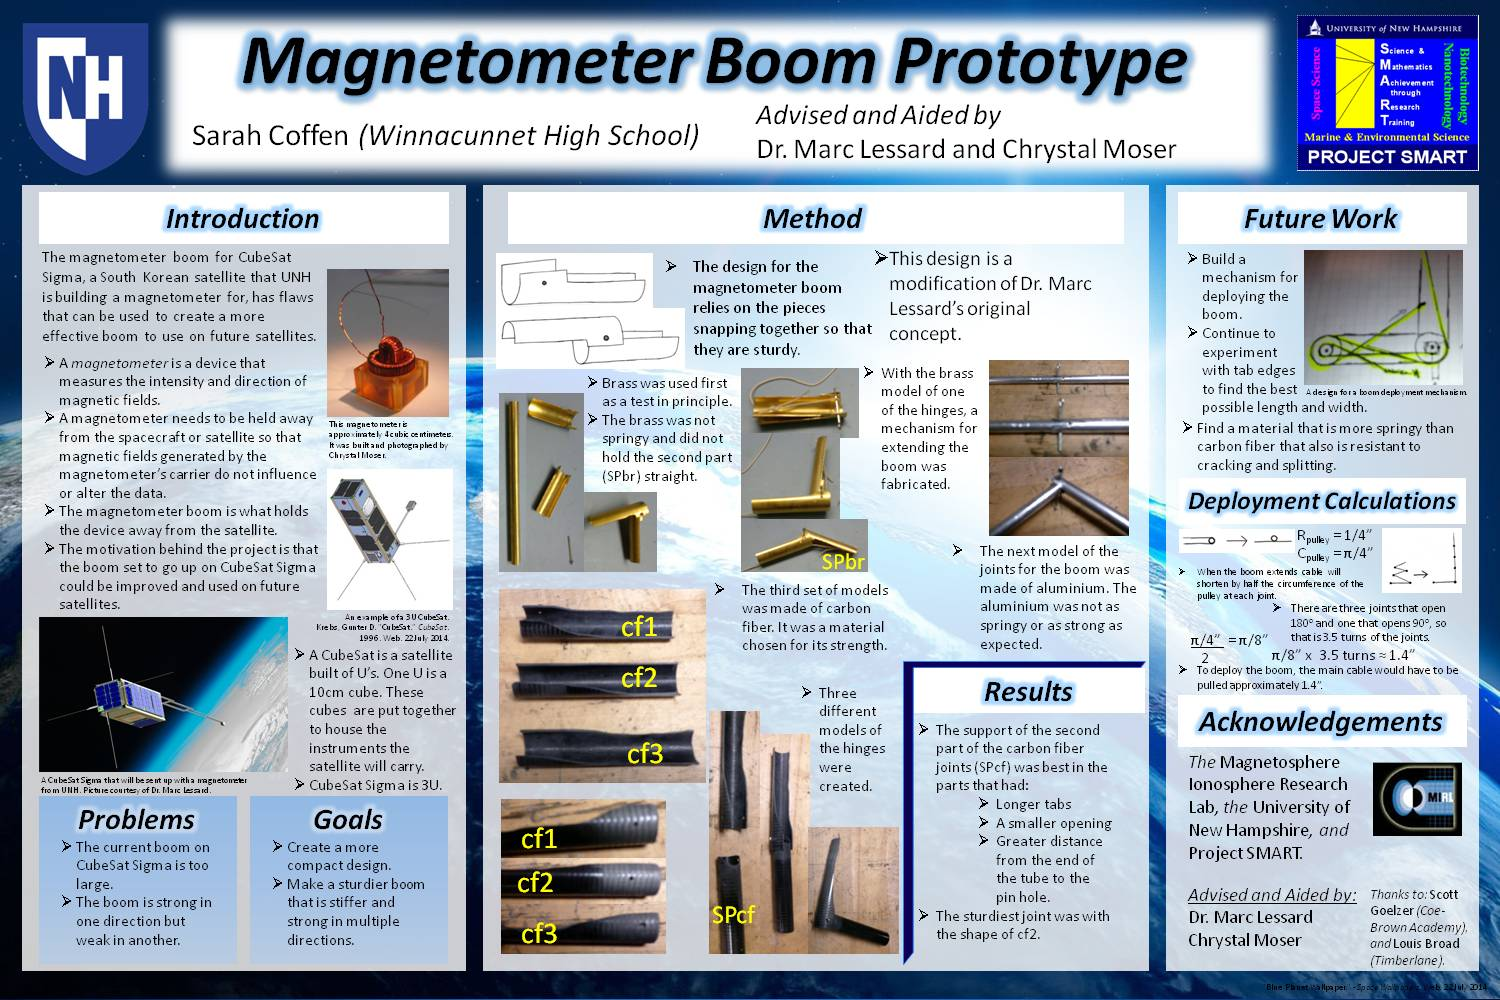 Magnetometer Boom by CWSmith